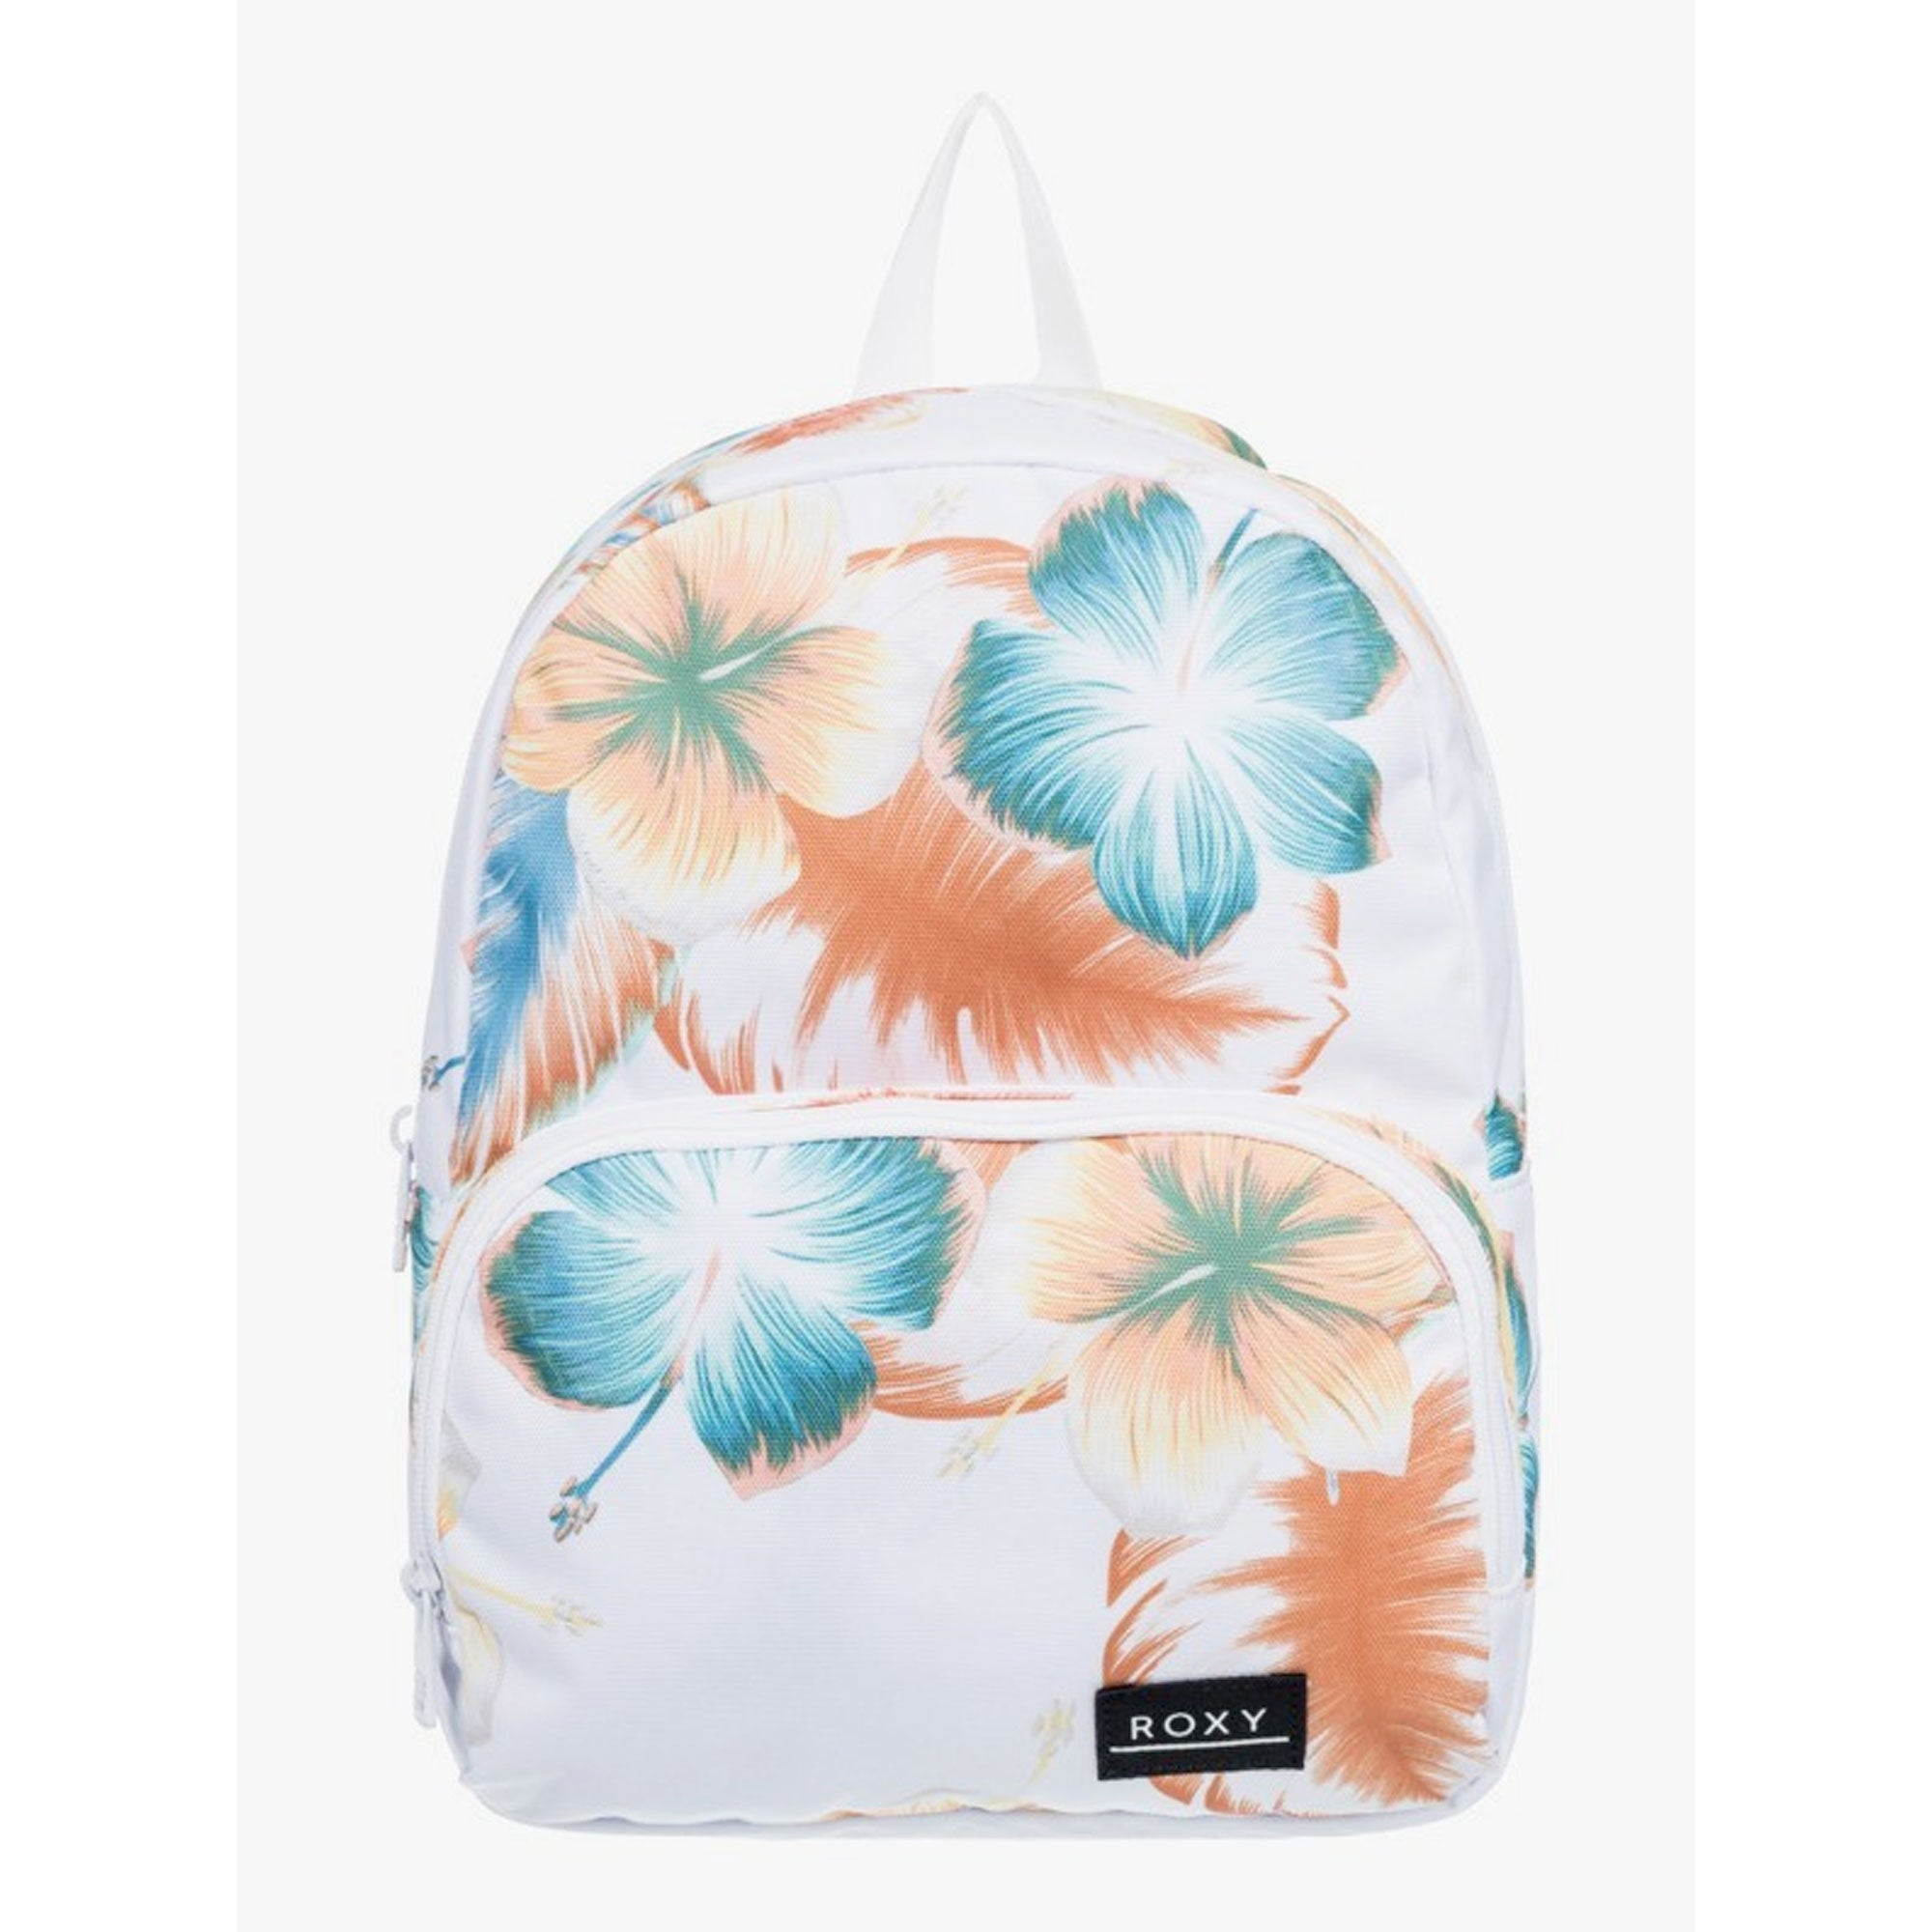 Roxy Always Core Printed 8L Recycled Girls Backpack